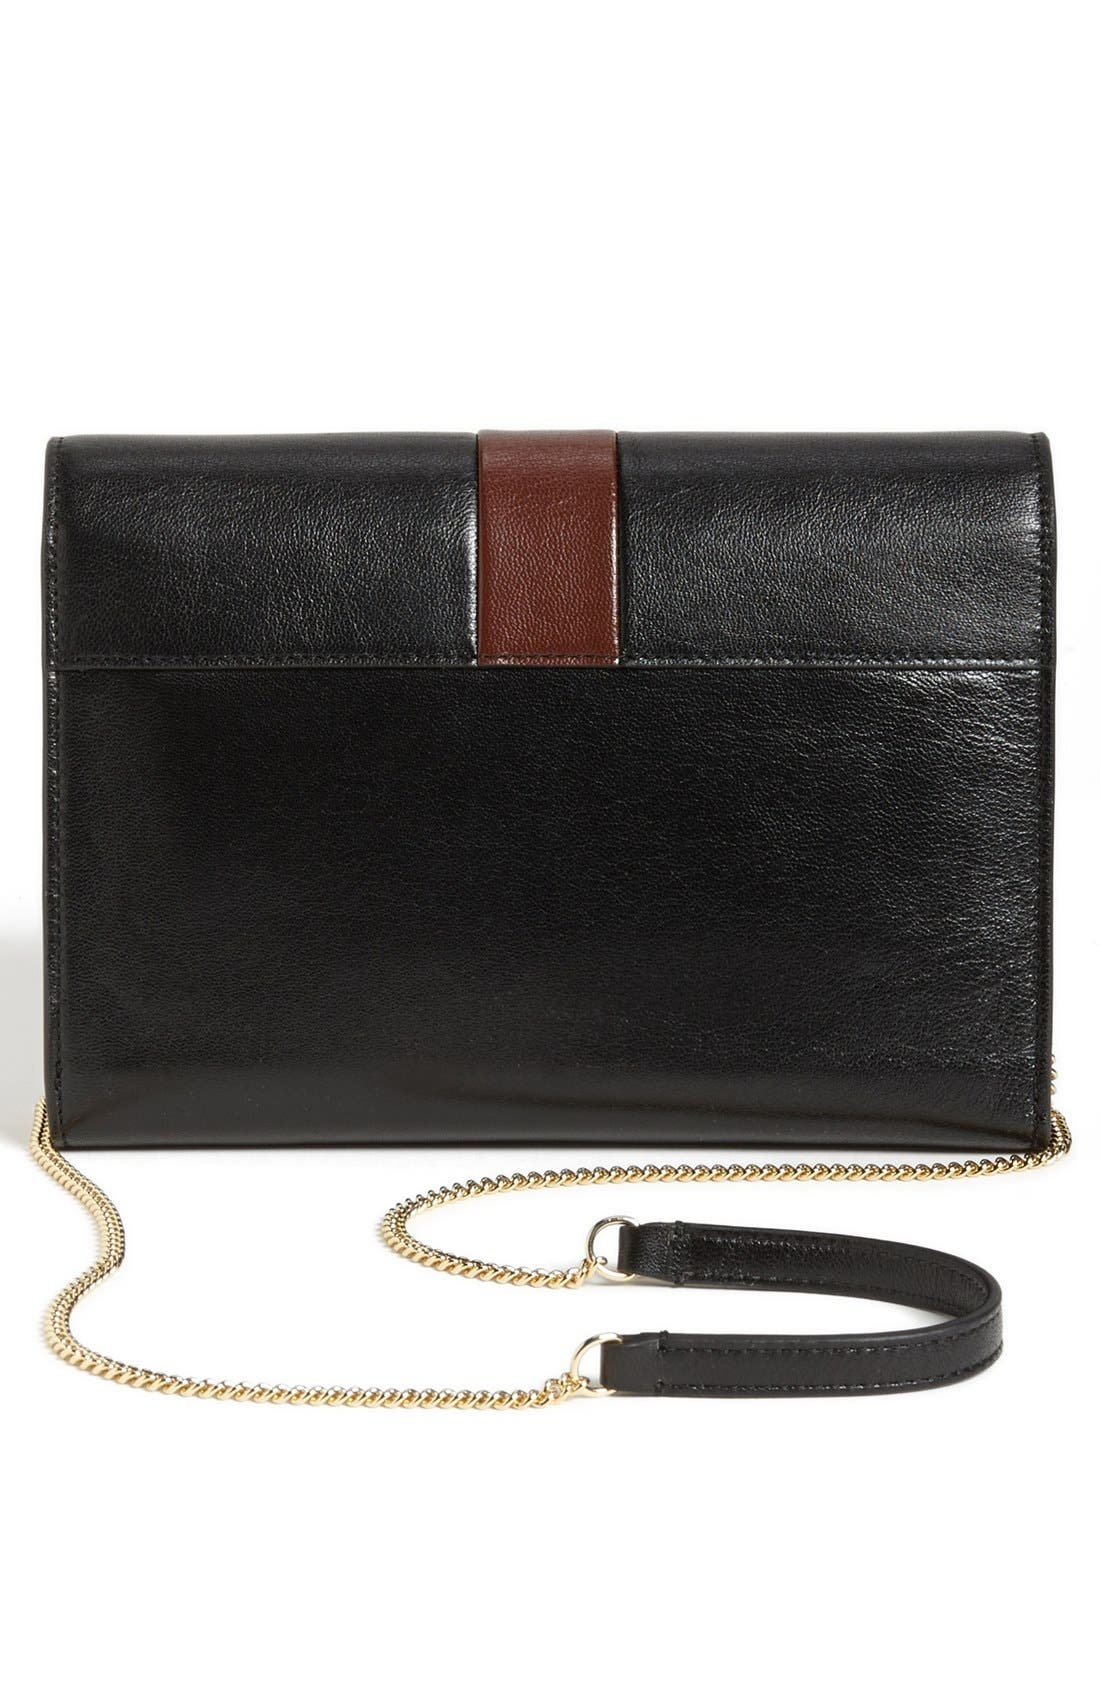 MARC JACOBS,                             'Checkers' All-In-One Leather Crossbody Bag,                             Alternate thumbnail 4, color,                             002